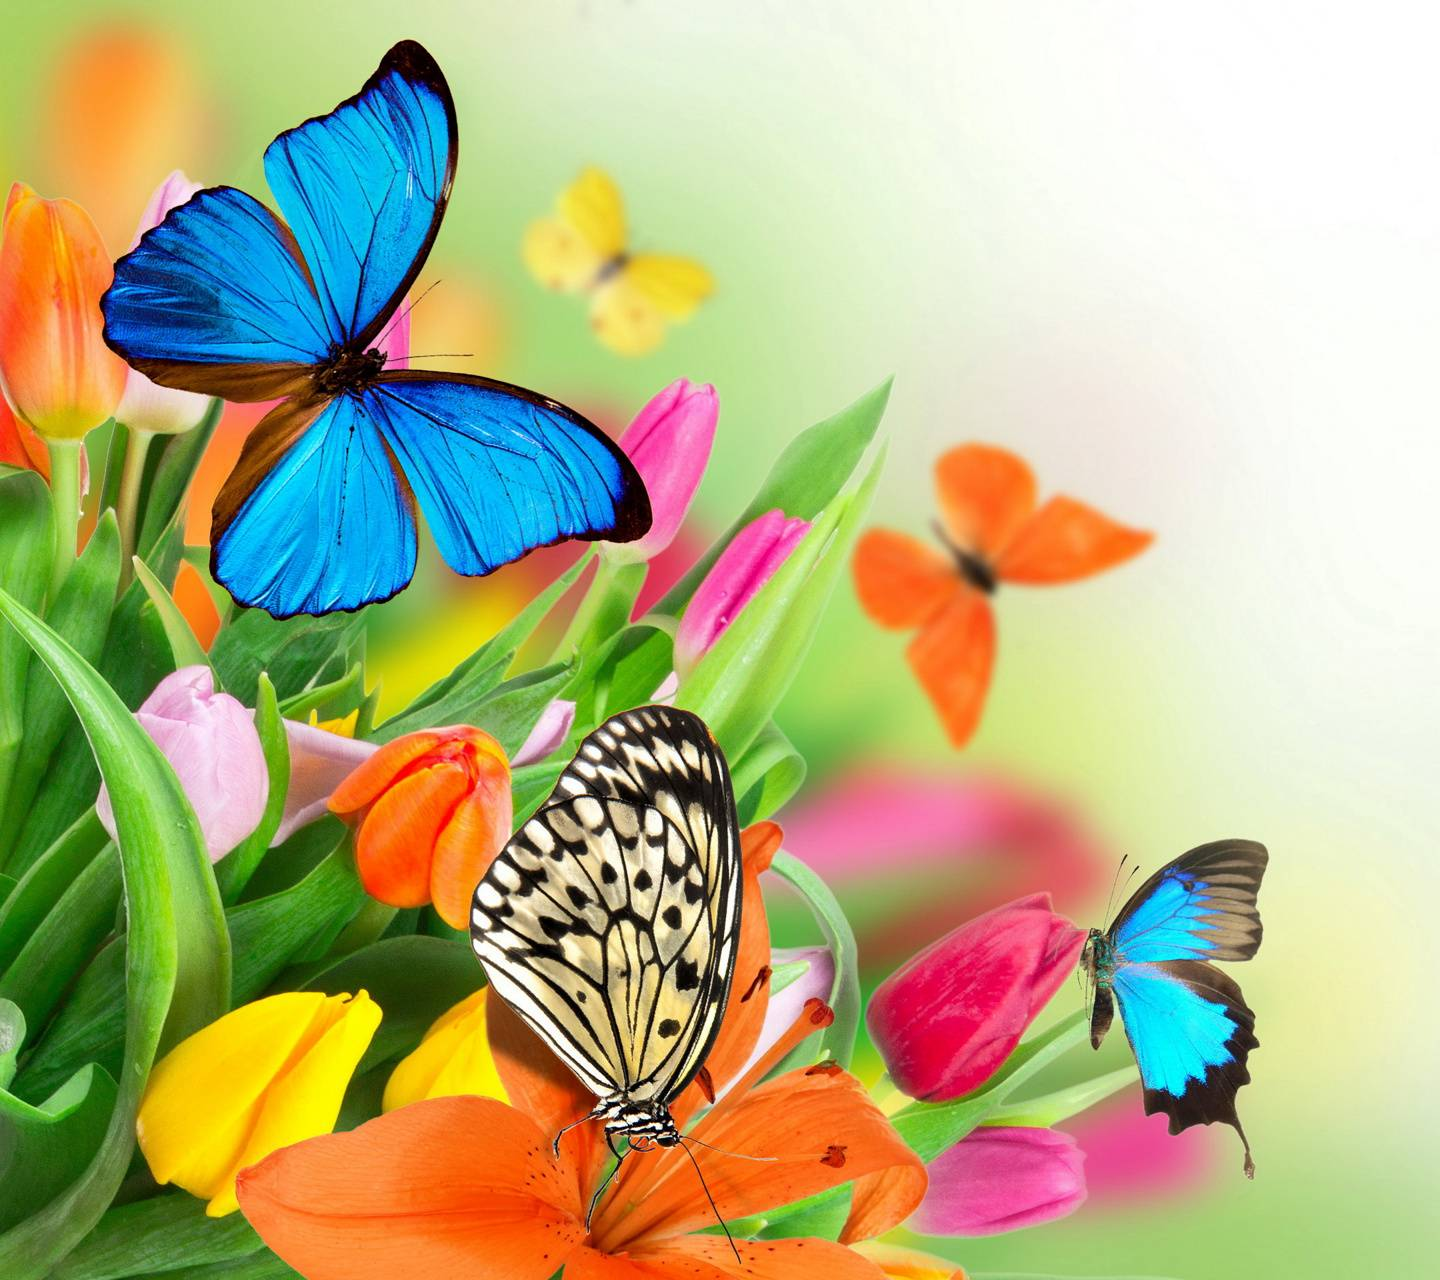 Spring Butterflies Wallpaper By Marika 24 Free On Zedge